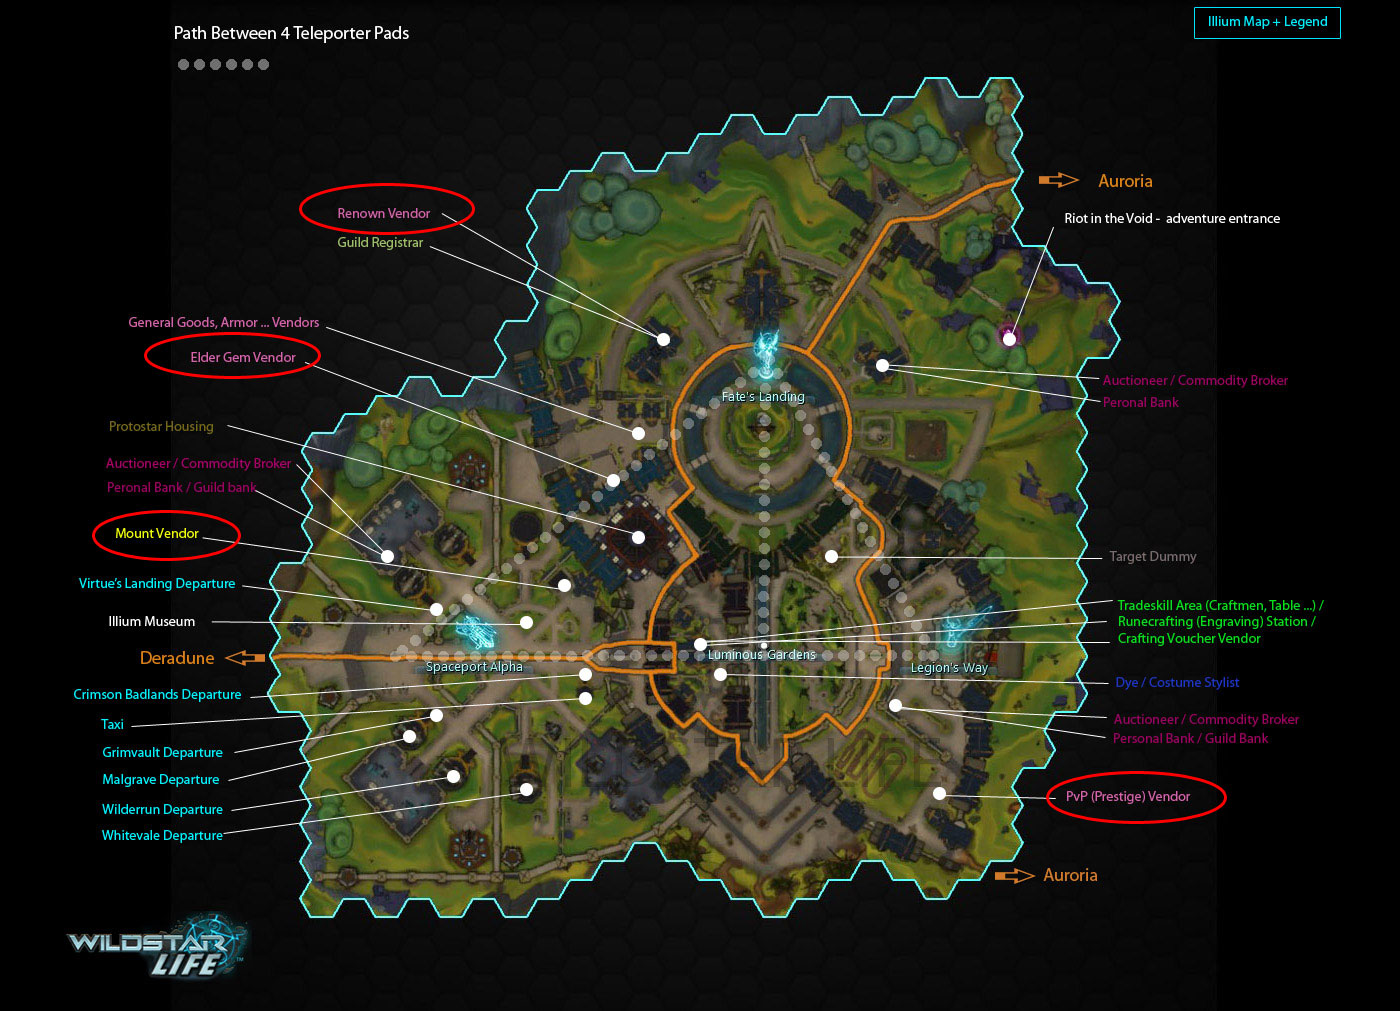 Illium map points of interest